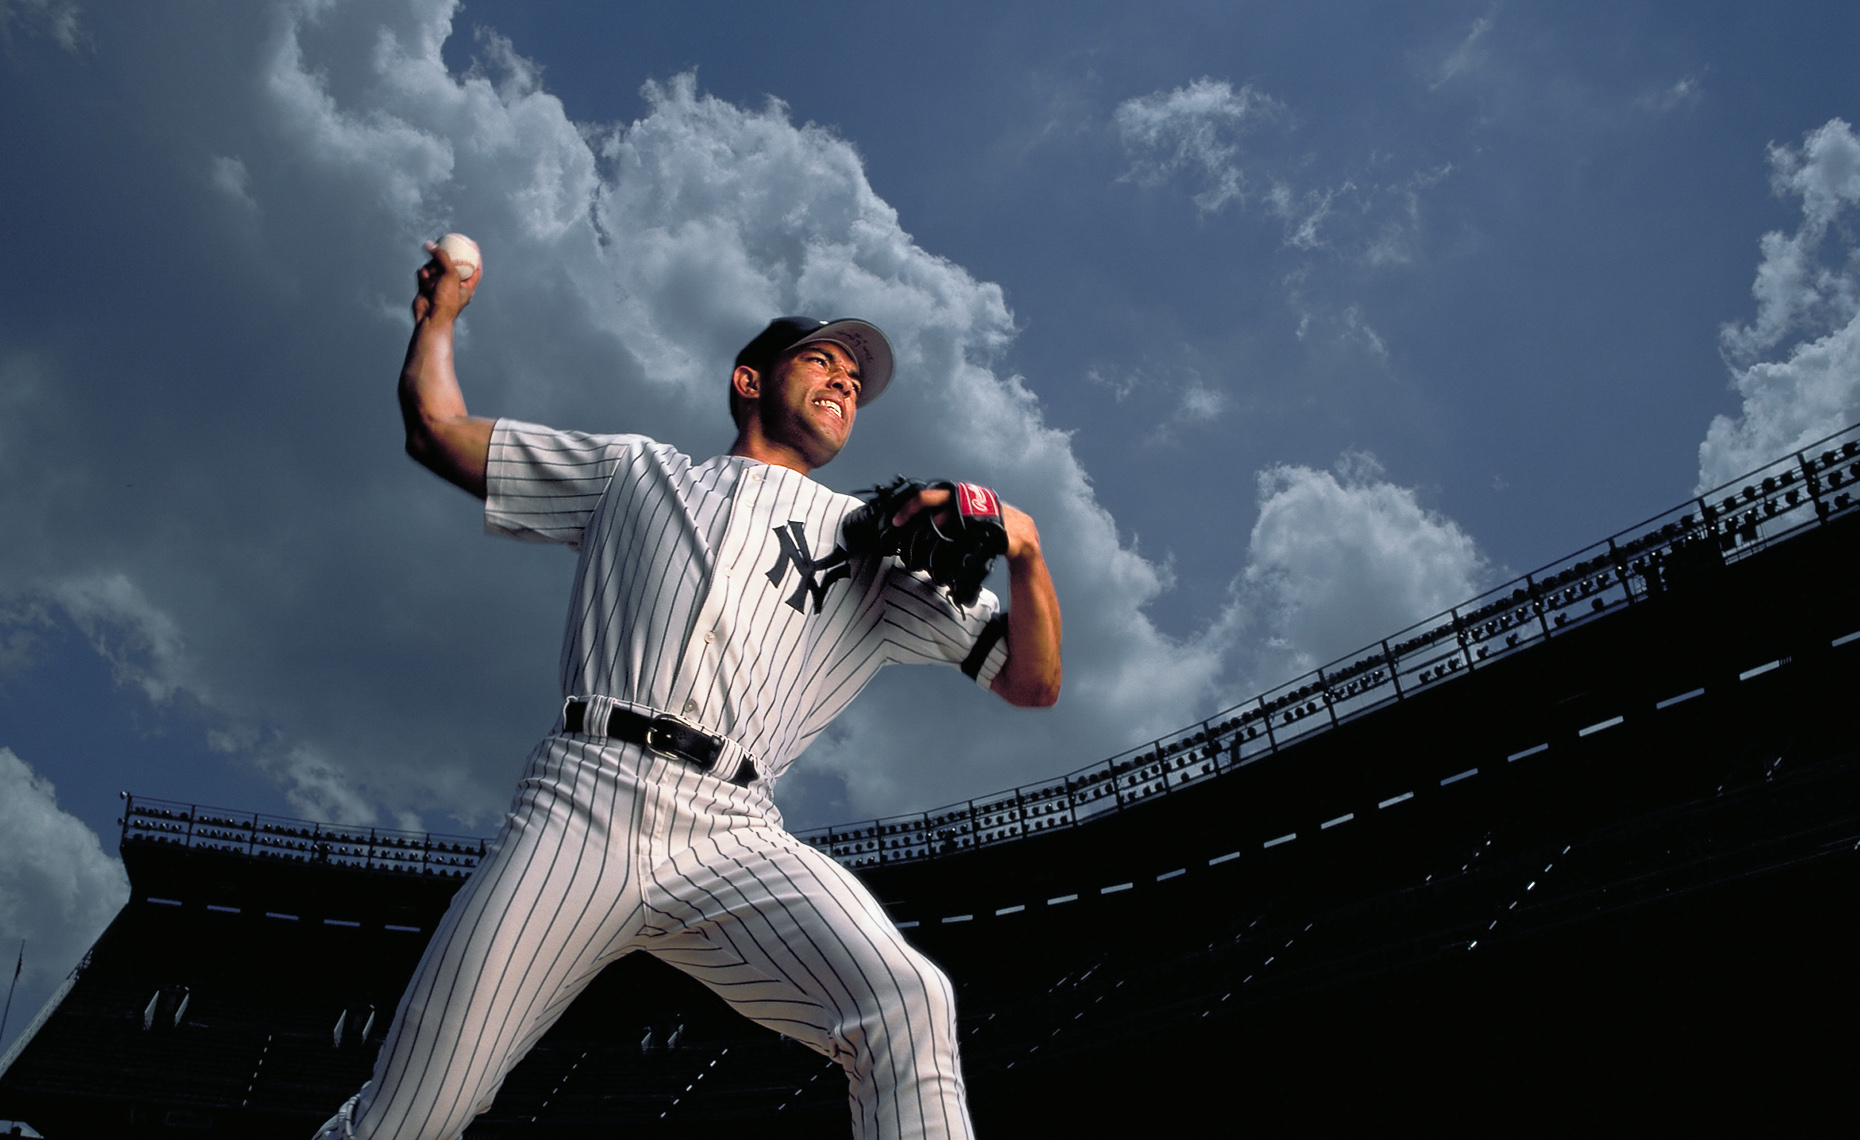 RIVERA_PITCHING_SEALE_SPORTS_PORTRAIT-12.jpg